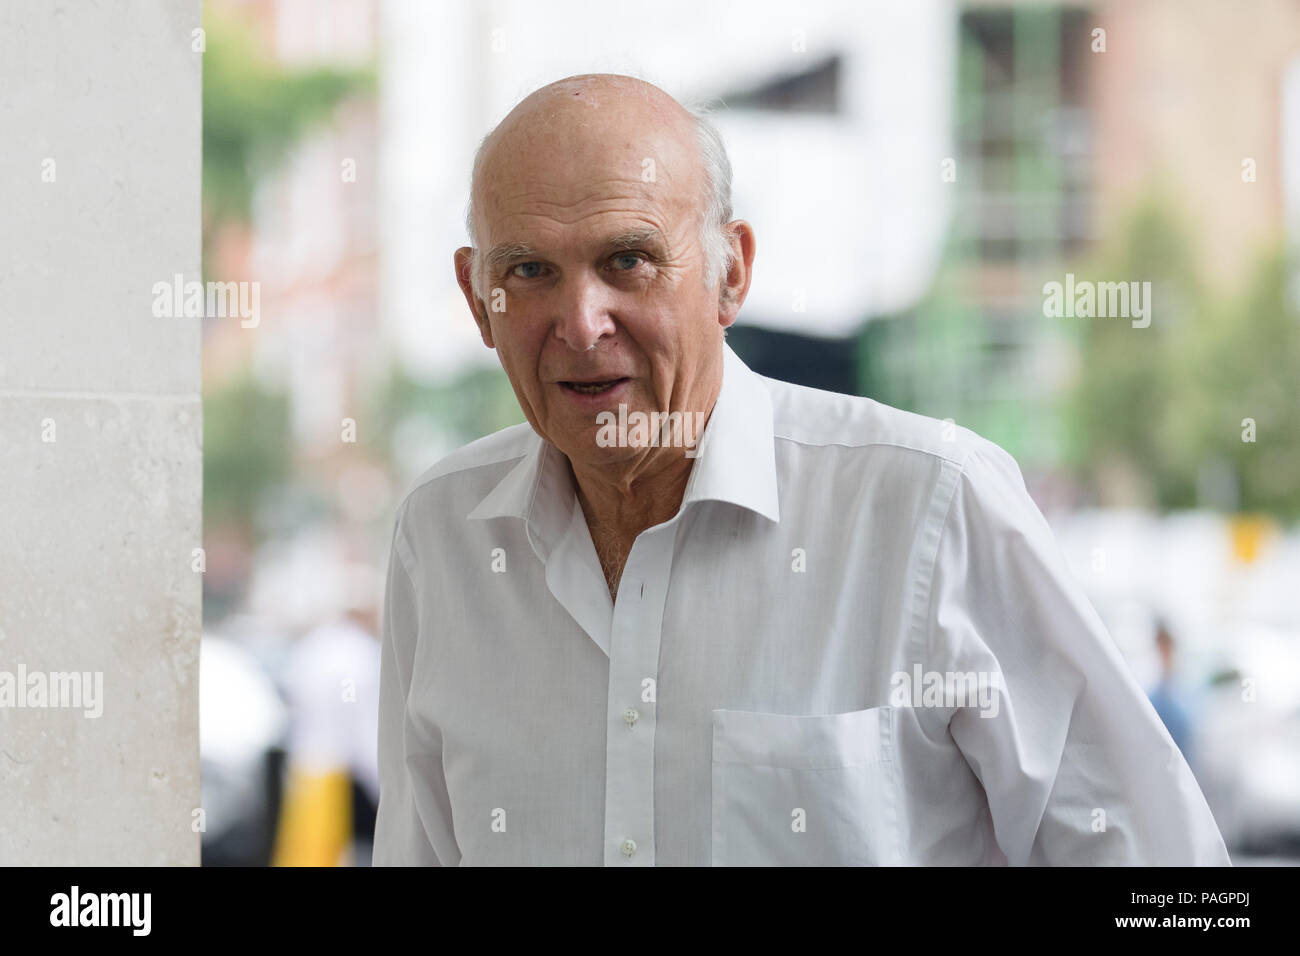 London, UK. 22nd July 2018. Vince Cable, leader of the Liberal Democrats party arrives at BBC Broadcasting House in London. - Stock Image